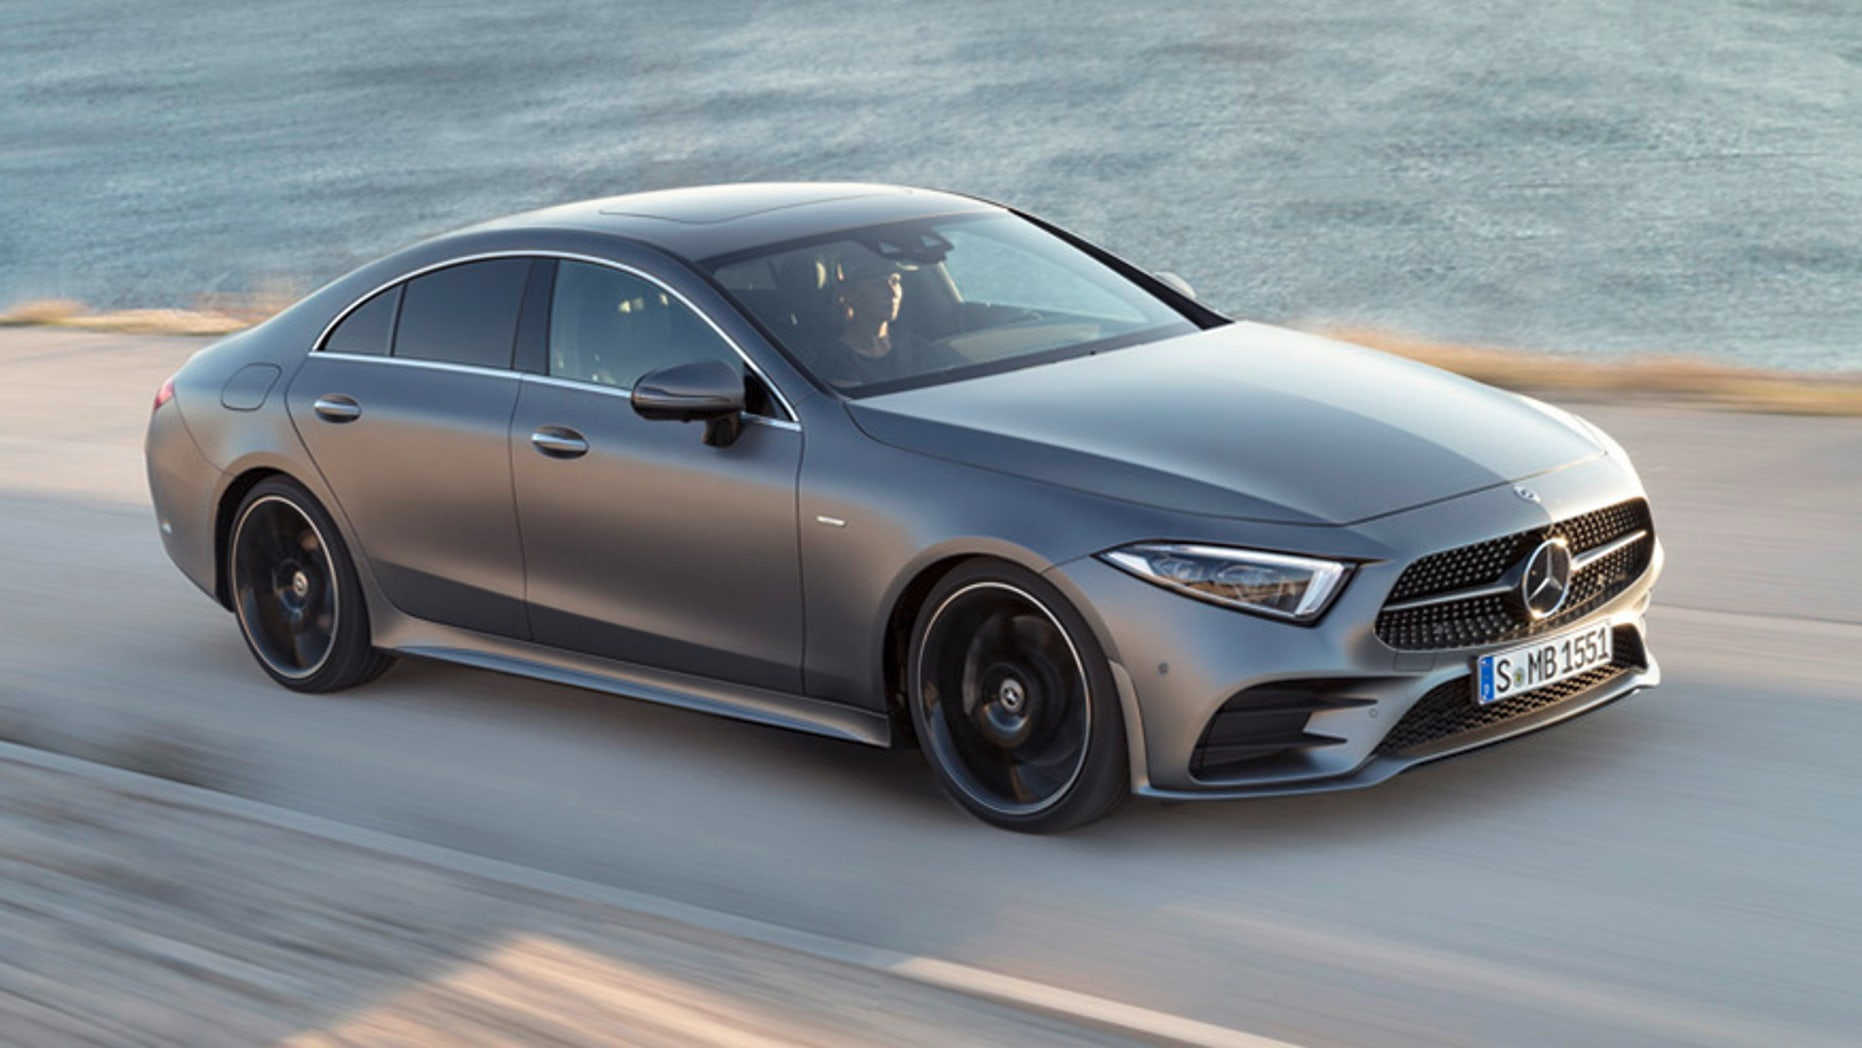 LA Auto Show The MercedesBenz CLS Fourdoor Coupe Brings Back - Mercedes benz car show